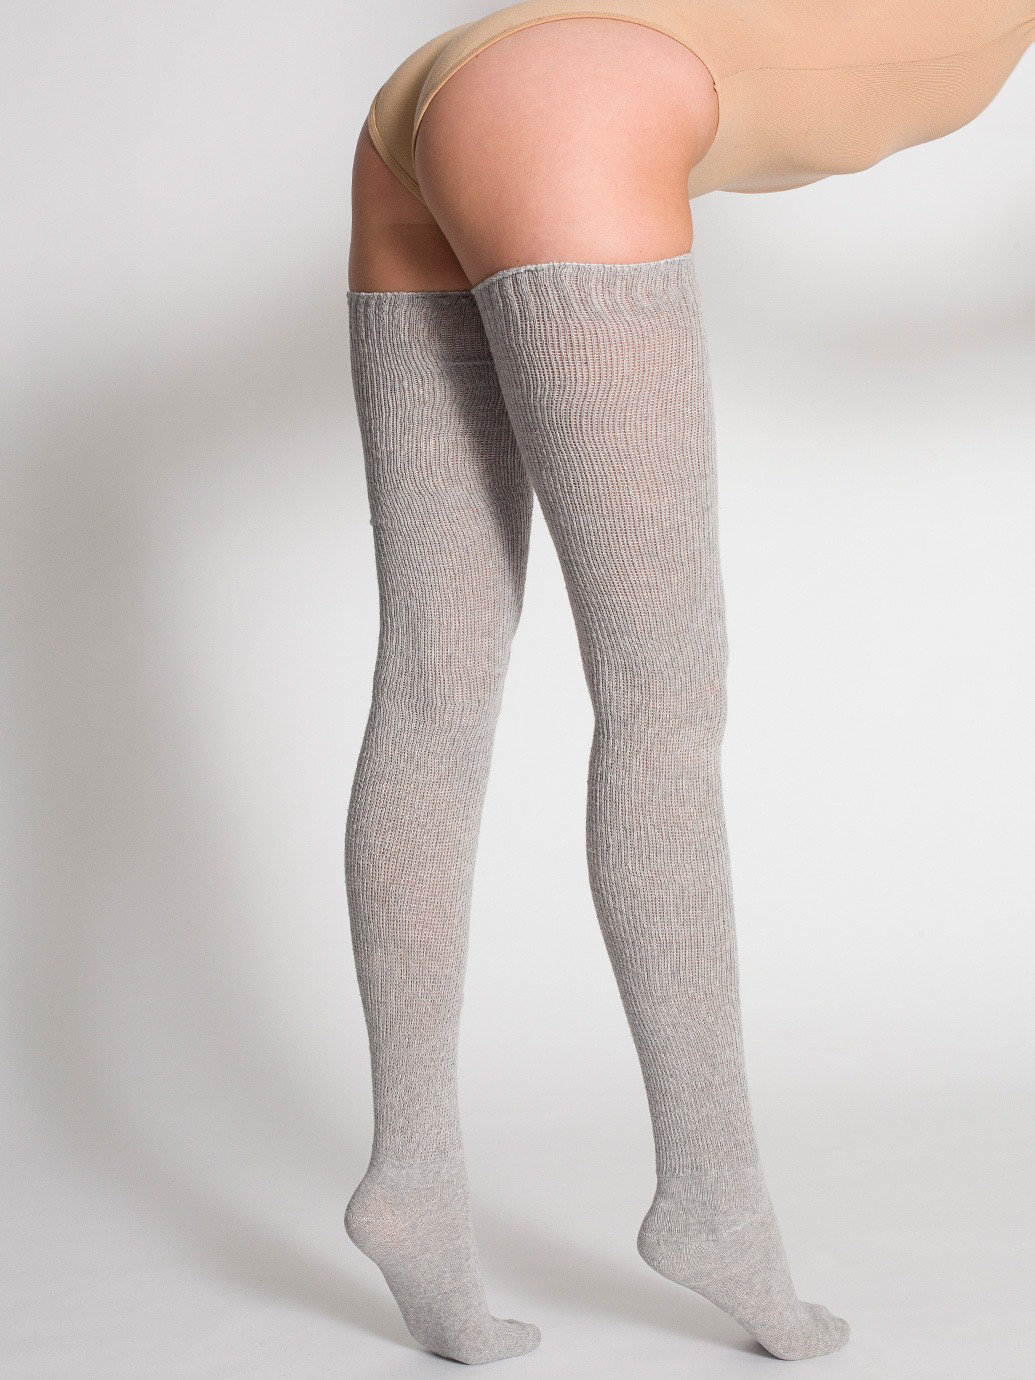 Watch Thigh High Socks porn videos for free, here on techclux.gq Discover the growing collection of high quality Most Relevant XXX movies and clips. No other sex tube is more popular and features more Thigh High Socks scenes than Pornhub! Browse through our impressive selection of porn videos in HD quality on any device you own.